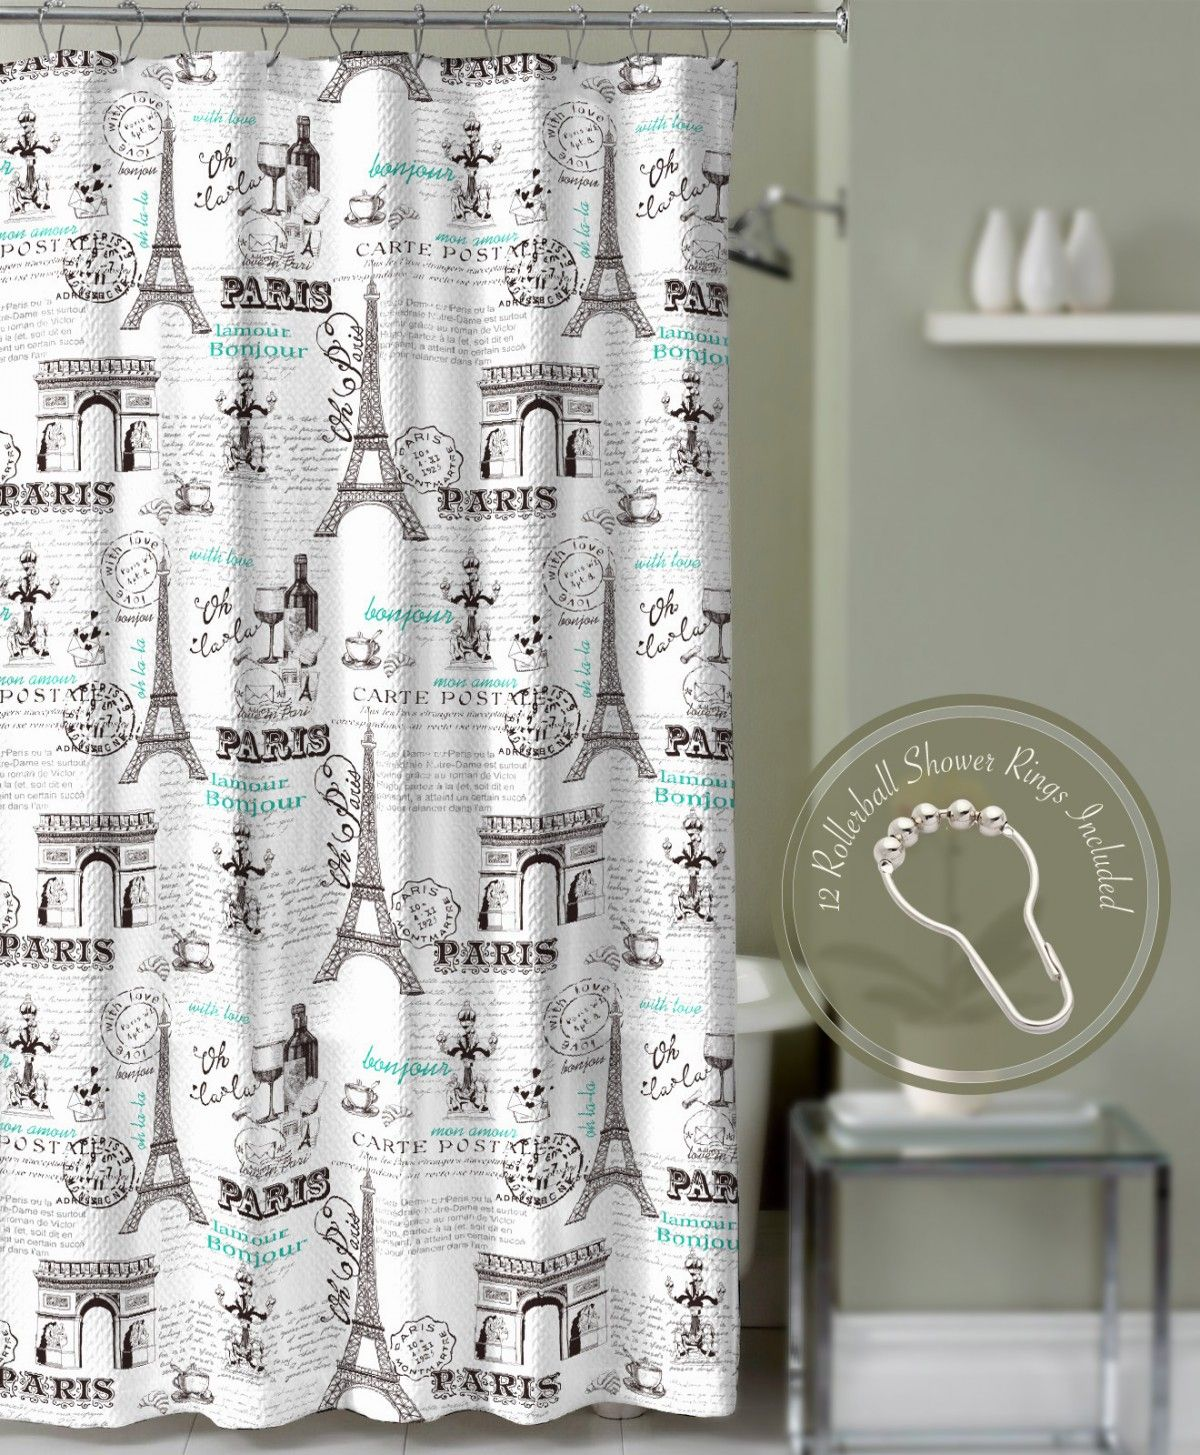 Crest Home Bonjour Paris Eiffel Tower Shower Curtain Teal With Roller Ball Hooks Curtains Bed Bath Greydock